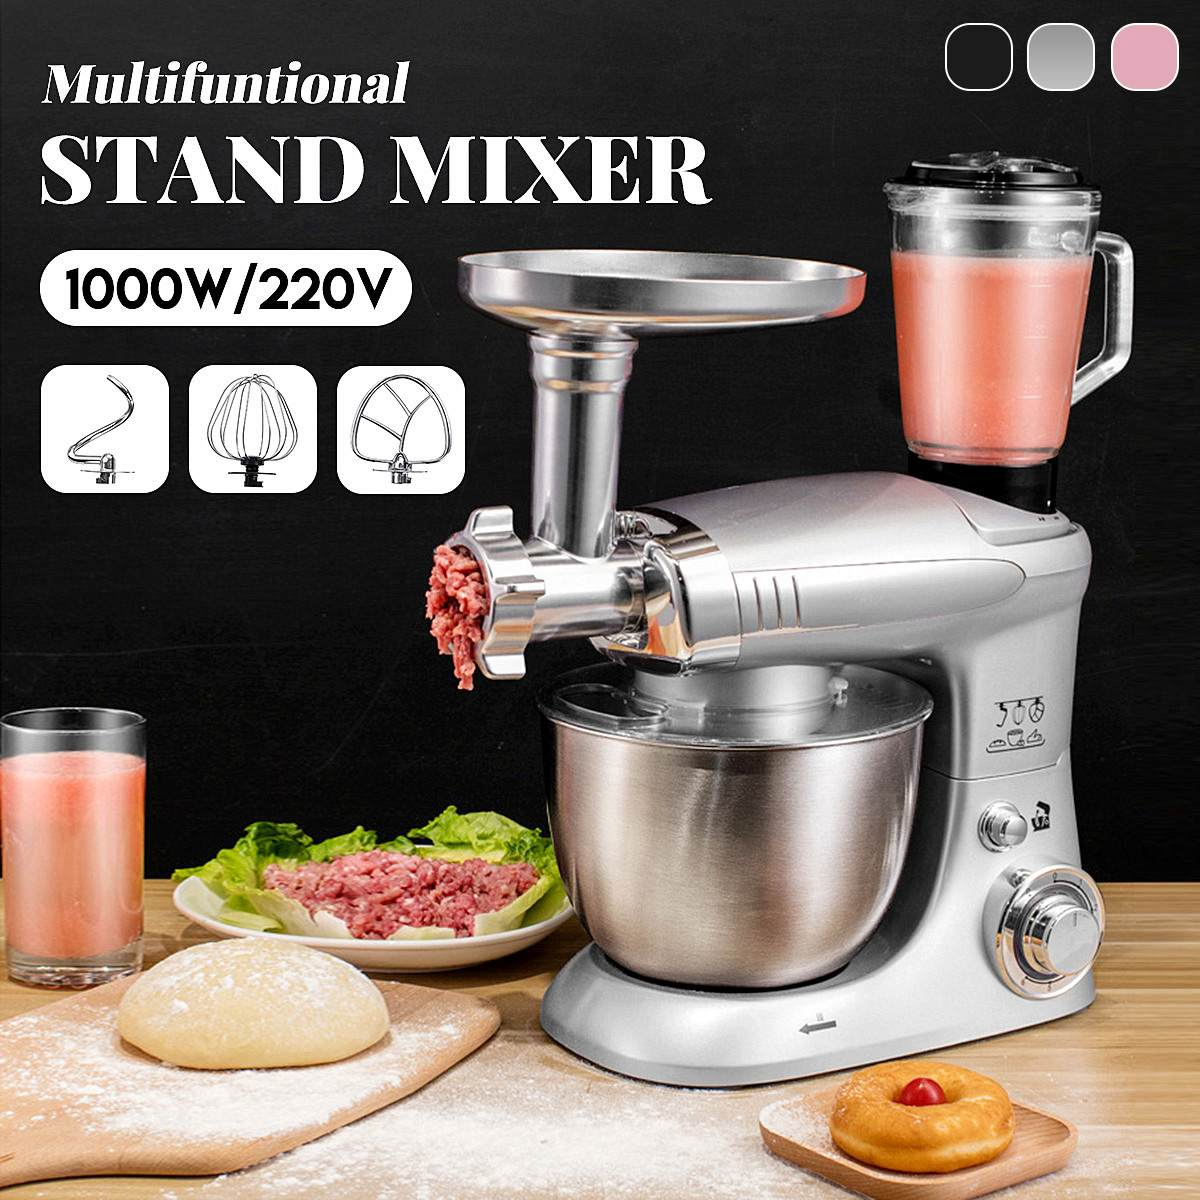 Stand Mixer 6 Speed Multifunctional Electric Food-Blender Mixer 1000W Meat Grinder Food Processor Doughs Beater Kitchen Tools